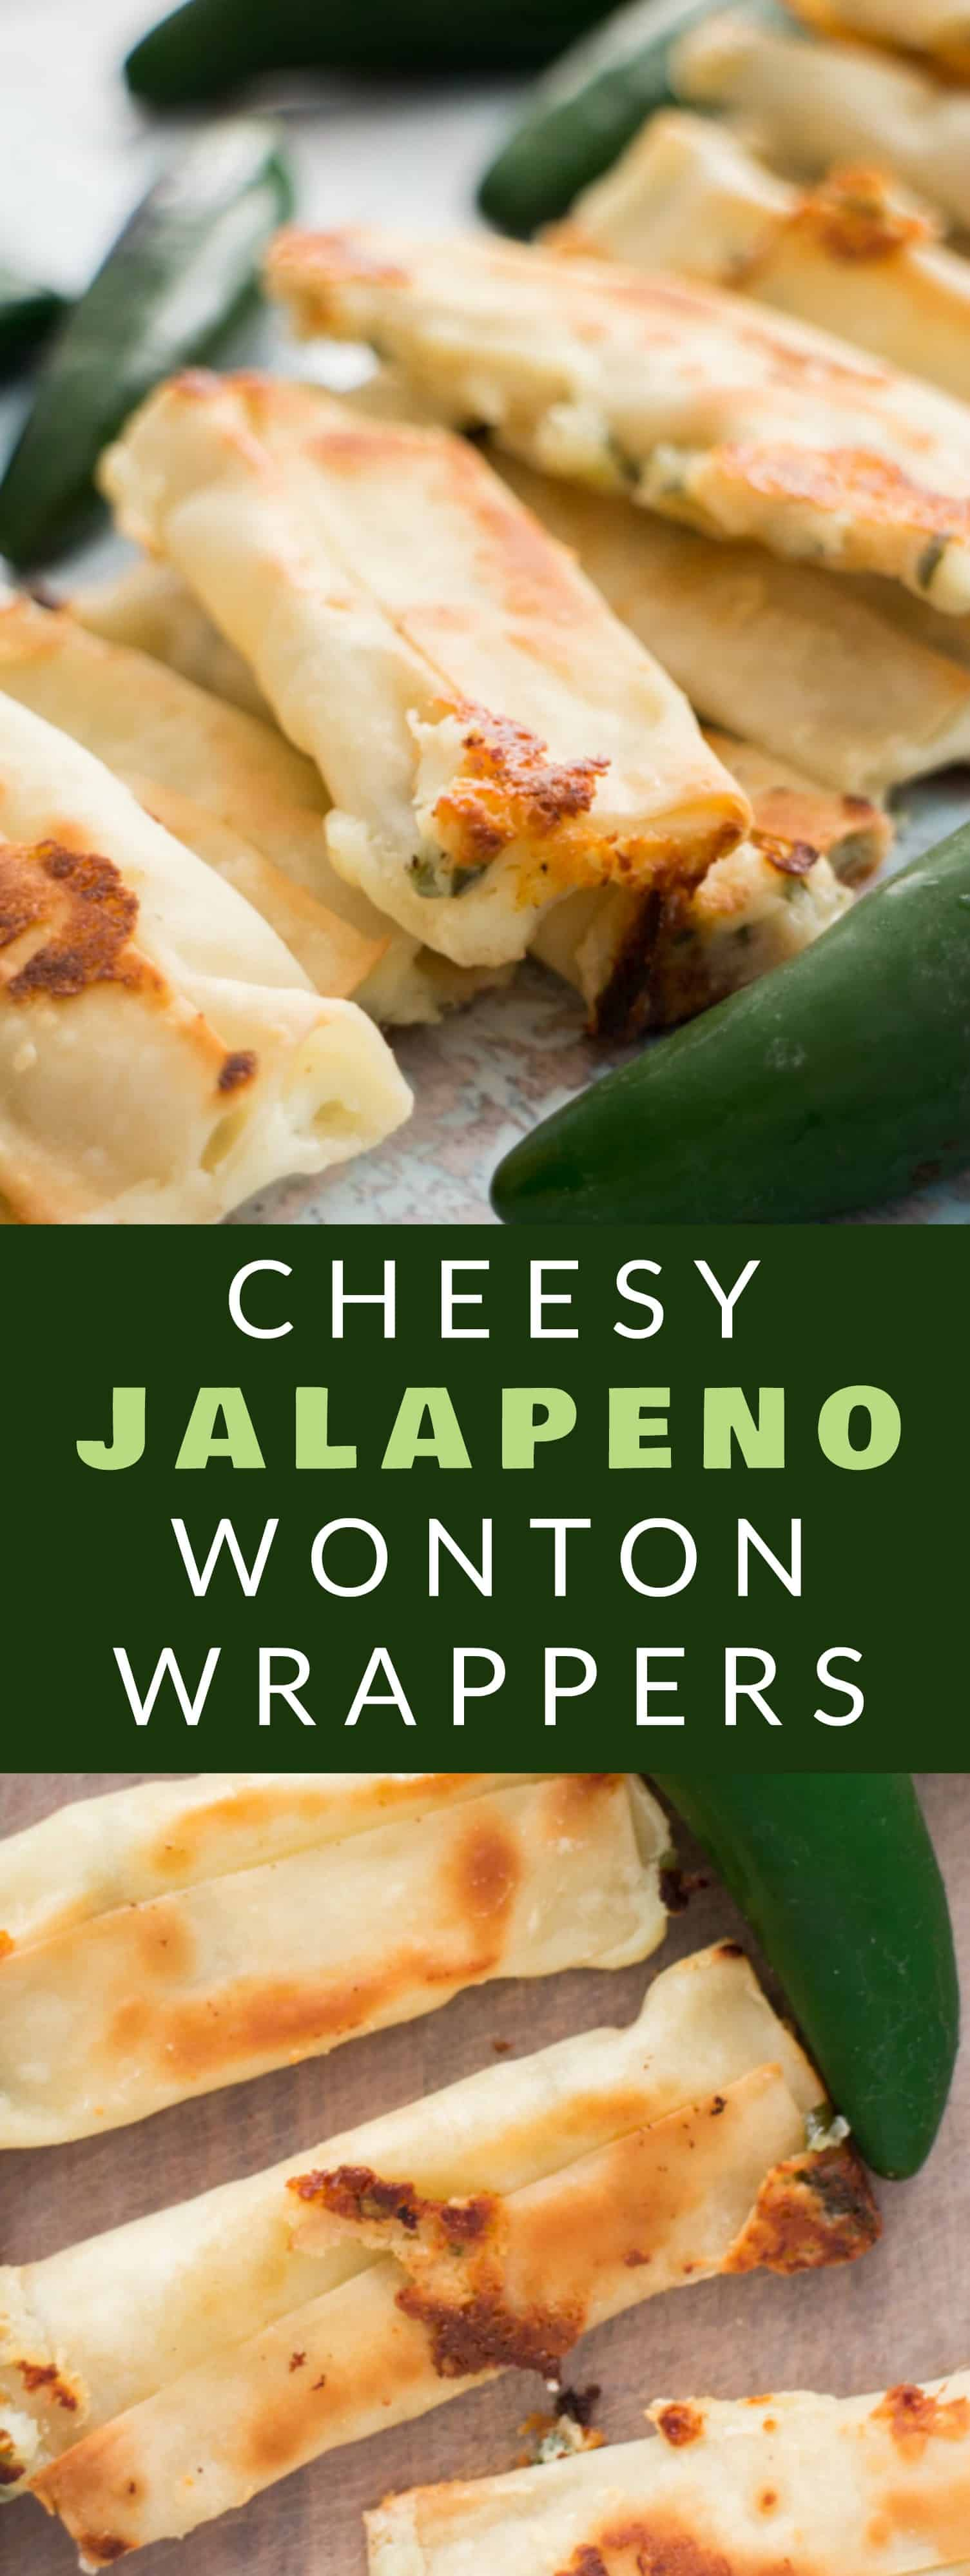 CHESSY JALAPENO WONTON POPPERS are so easy to make with wonton wrappers! This simple recipe uses cream cheese and jalapenos to wrap up in wonton wrappers! Bake them in the oven and serve them as a healthy appetizer! Everyone always LOVES these baked snacks!